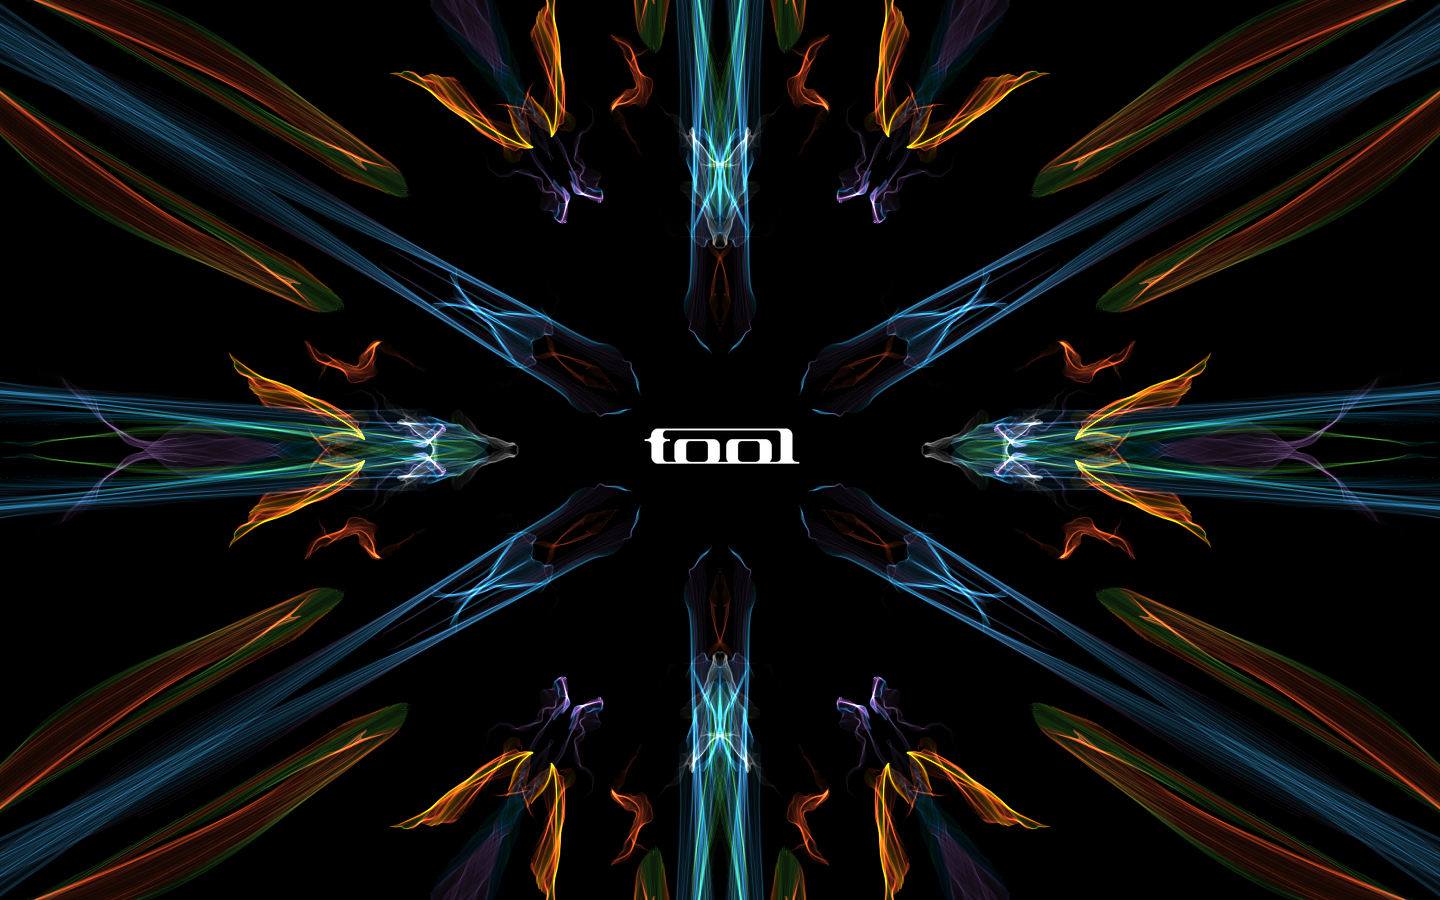 42] Tool Band Wallpaper HD on WallpaperSafari 1440x900